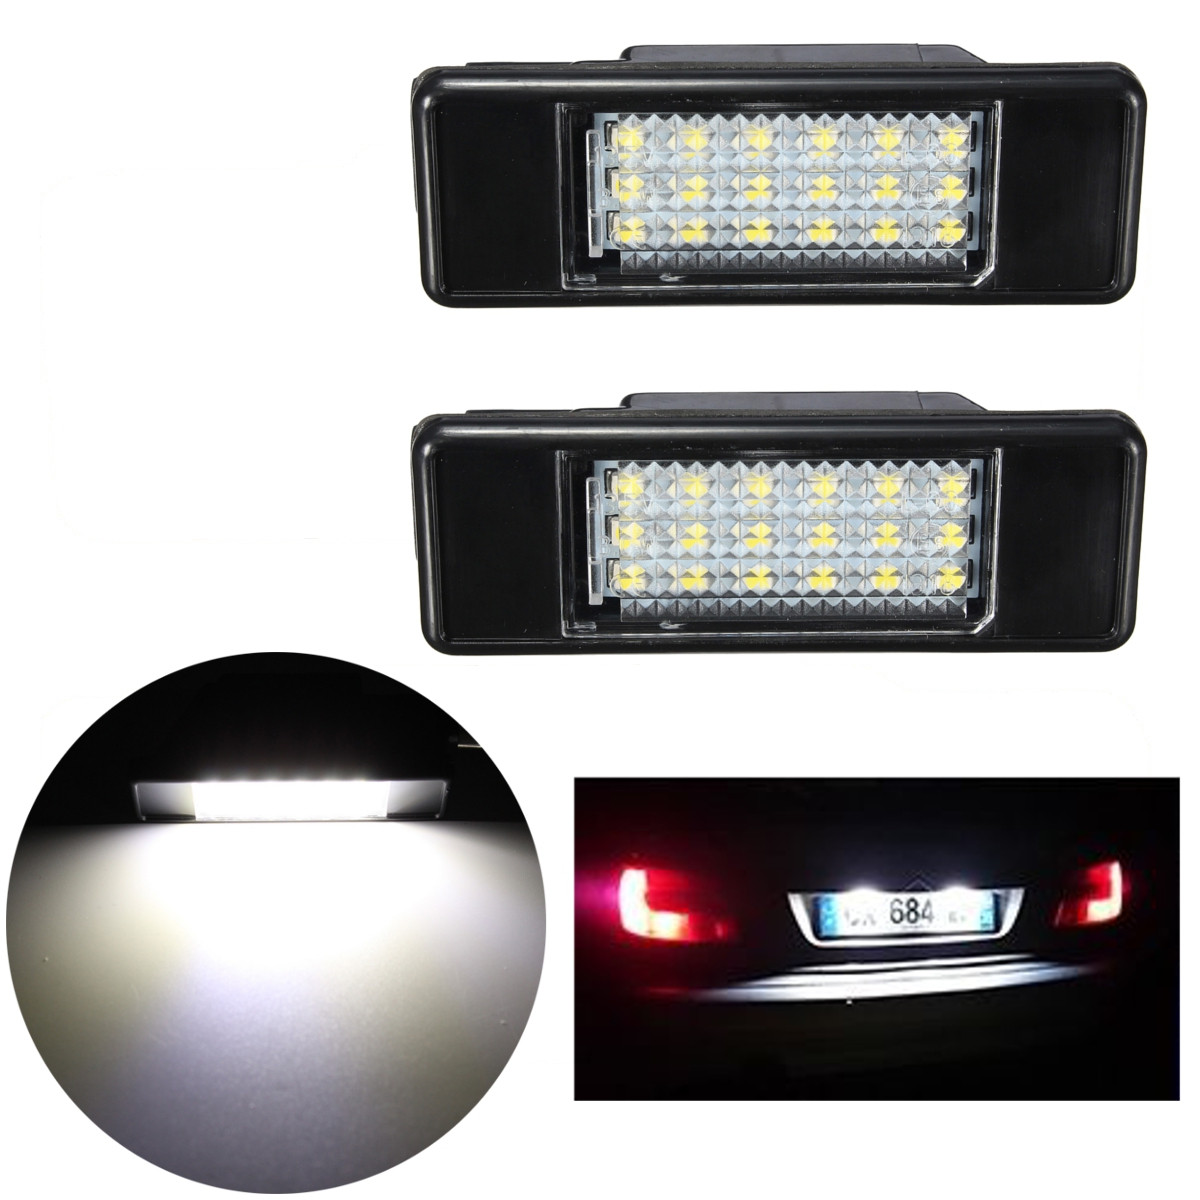 2 x Car Rear 18 <font><b>LED</b></font> SMD License Number Plate Light <font><b>Lamp</b></font> 6000K For <font><b>Peugeot</b></font> 106 207 307 <font><b>308</b></font> 406 407 508 For CITROEN C3 C4 C5 C6 C8 image